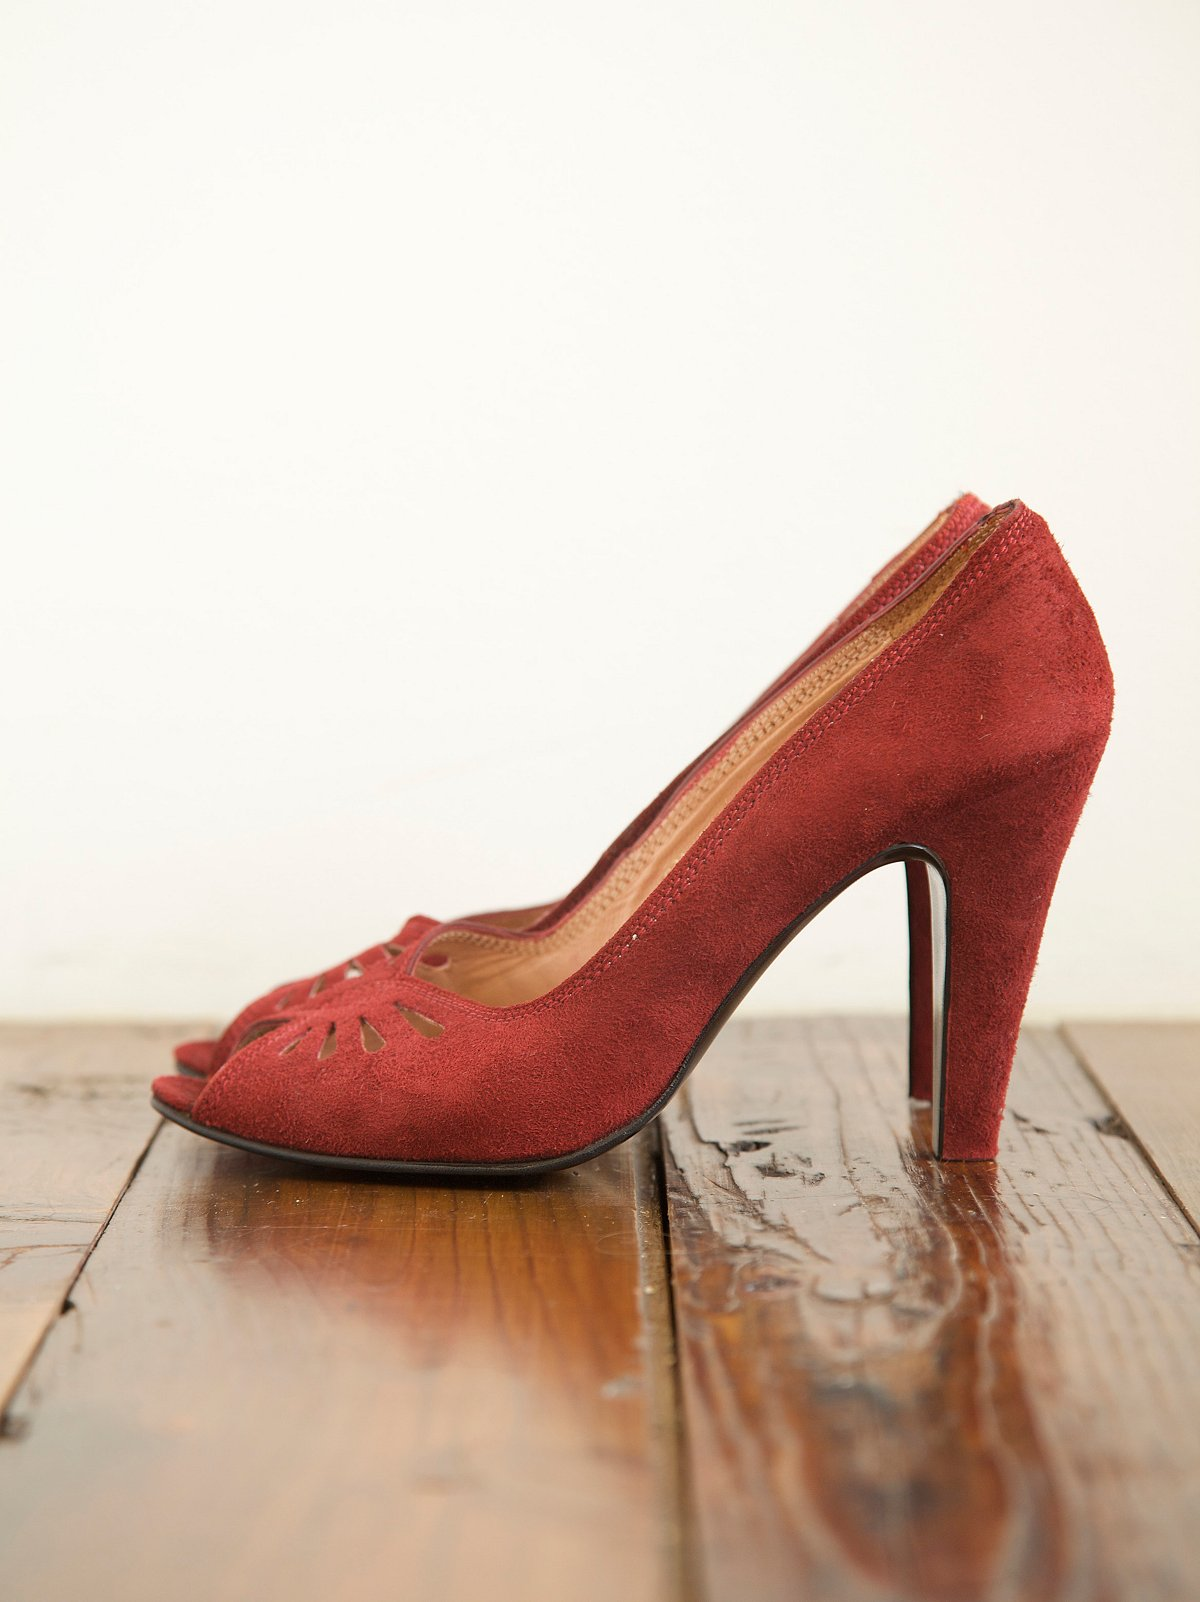 Vintage Suede Pumps